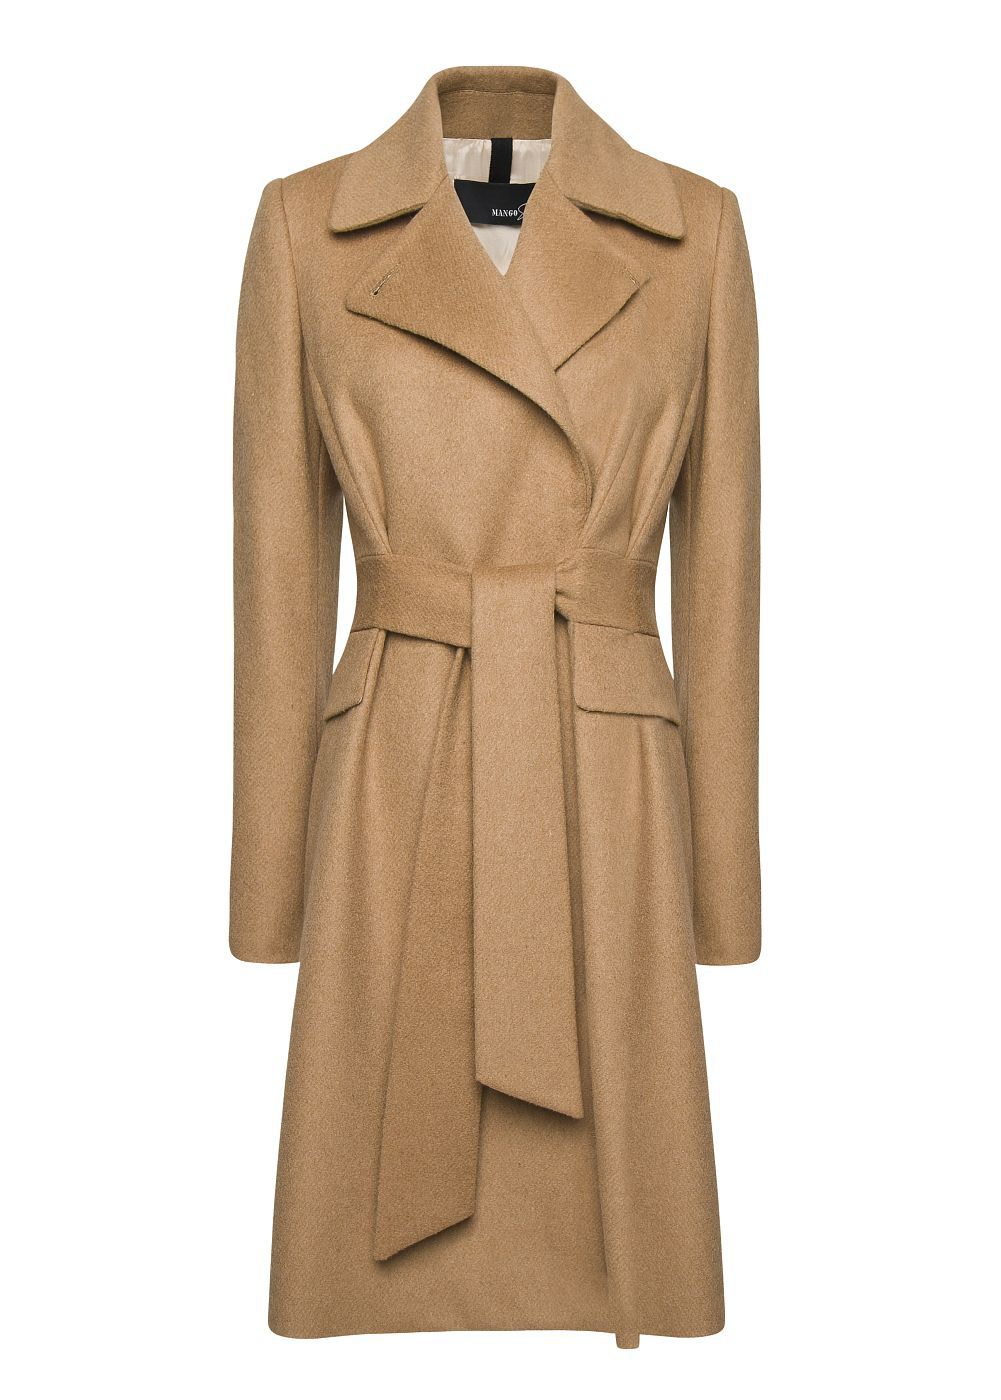 Free shipping and returns on Women's Black Wool & Wool-Blend Coats at desire-date.tk